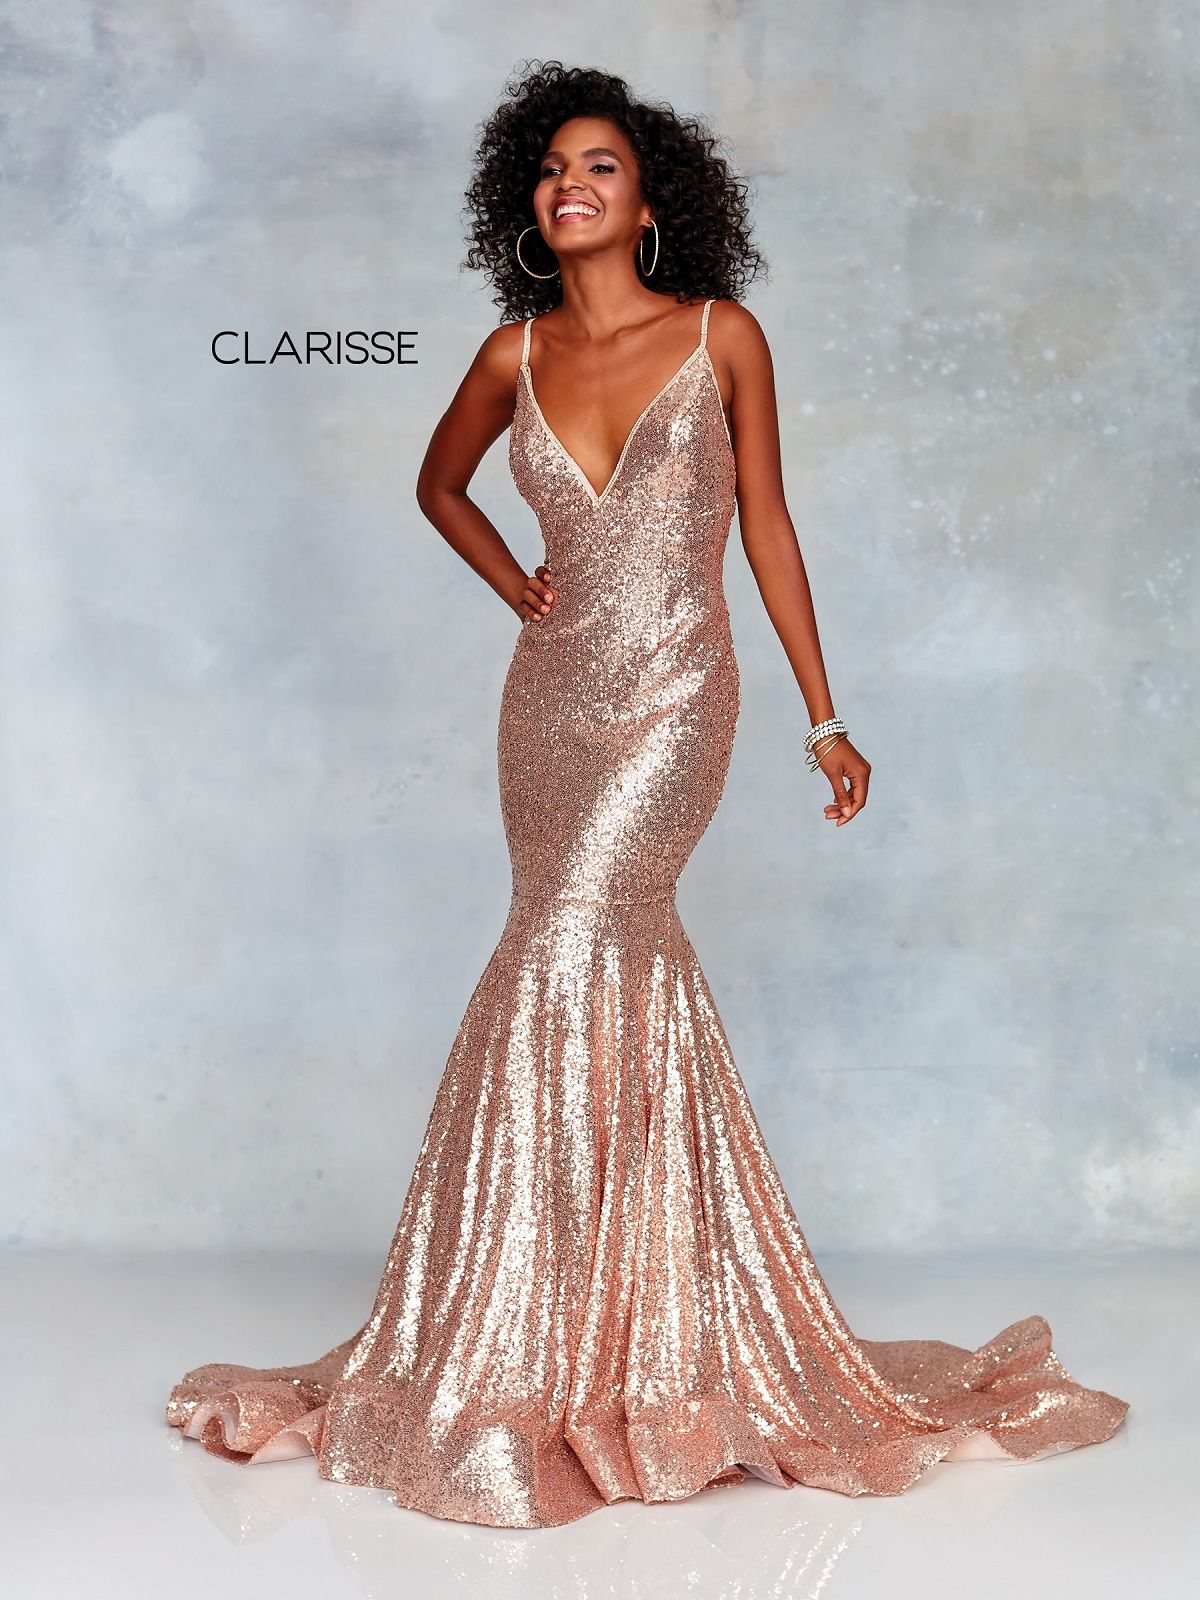 Clarisse Dress 3882 Glamorous Rose Gold Gown